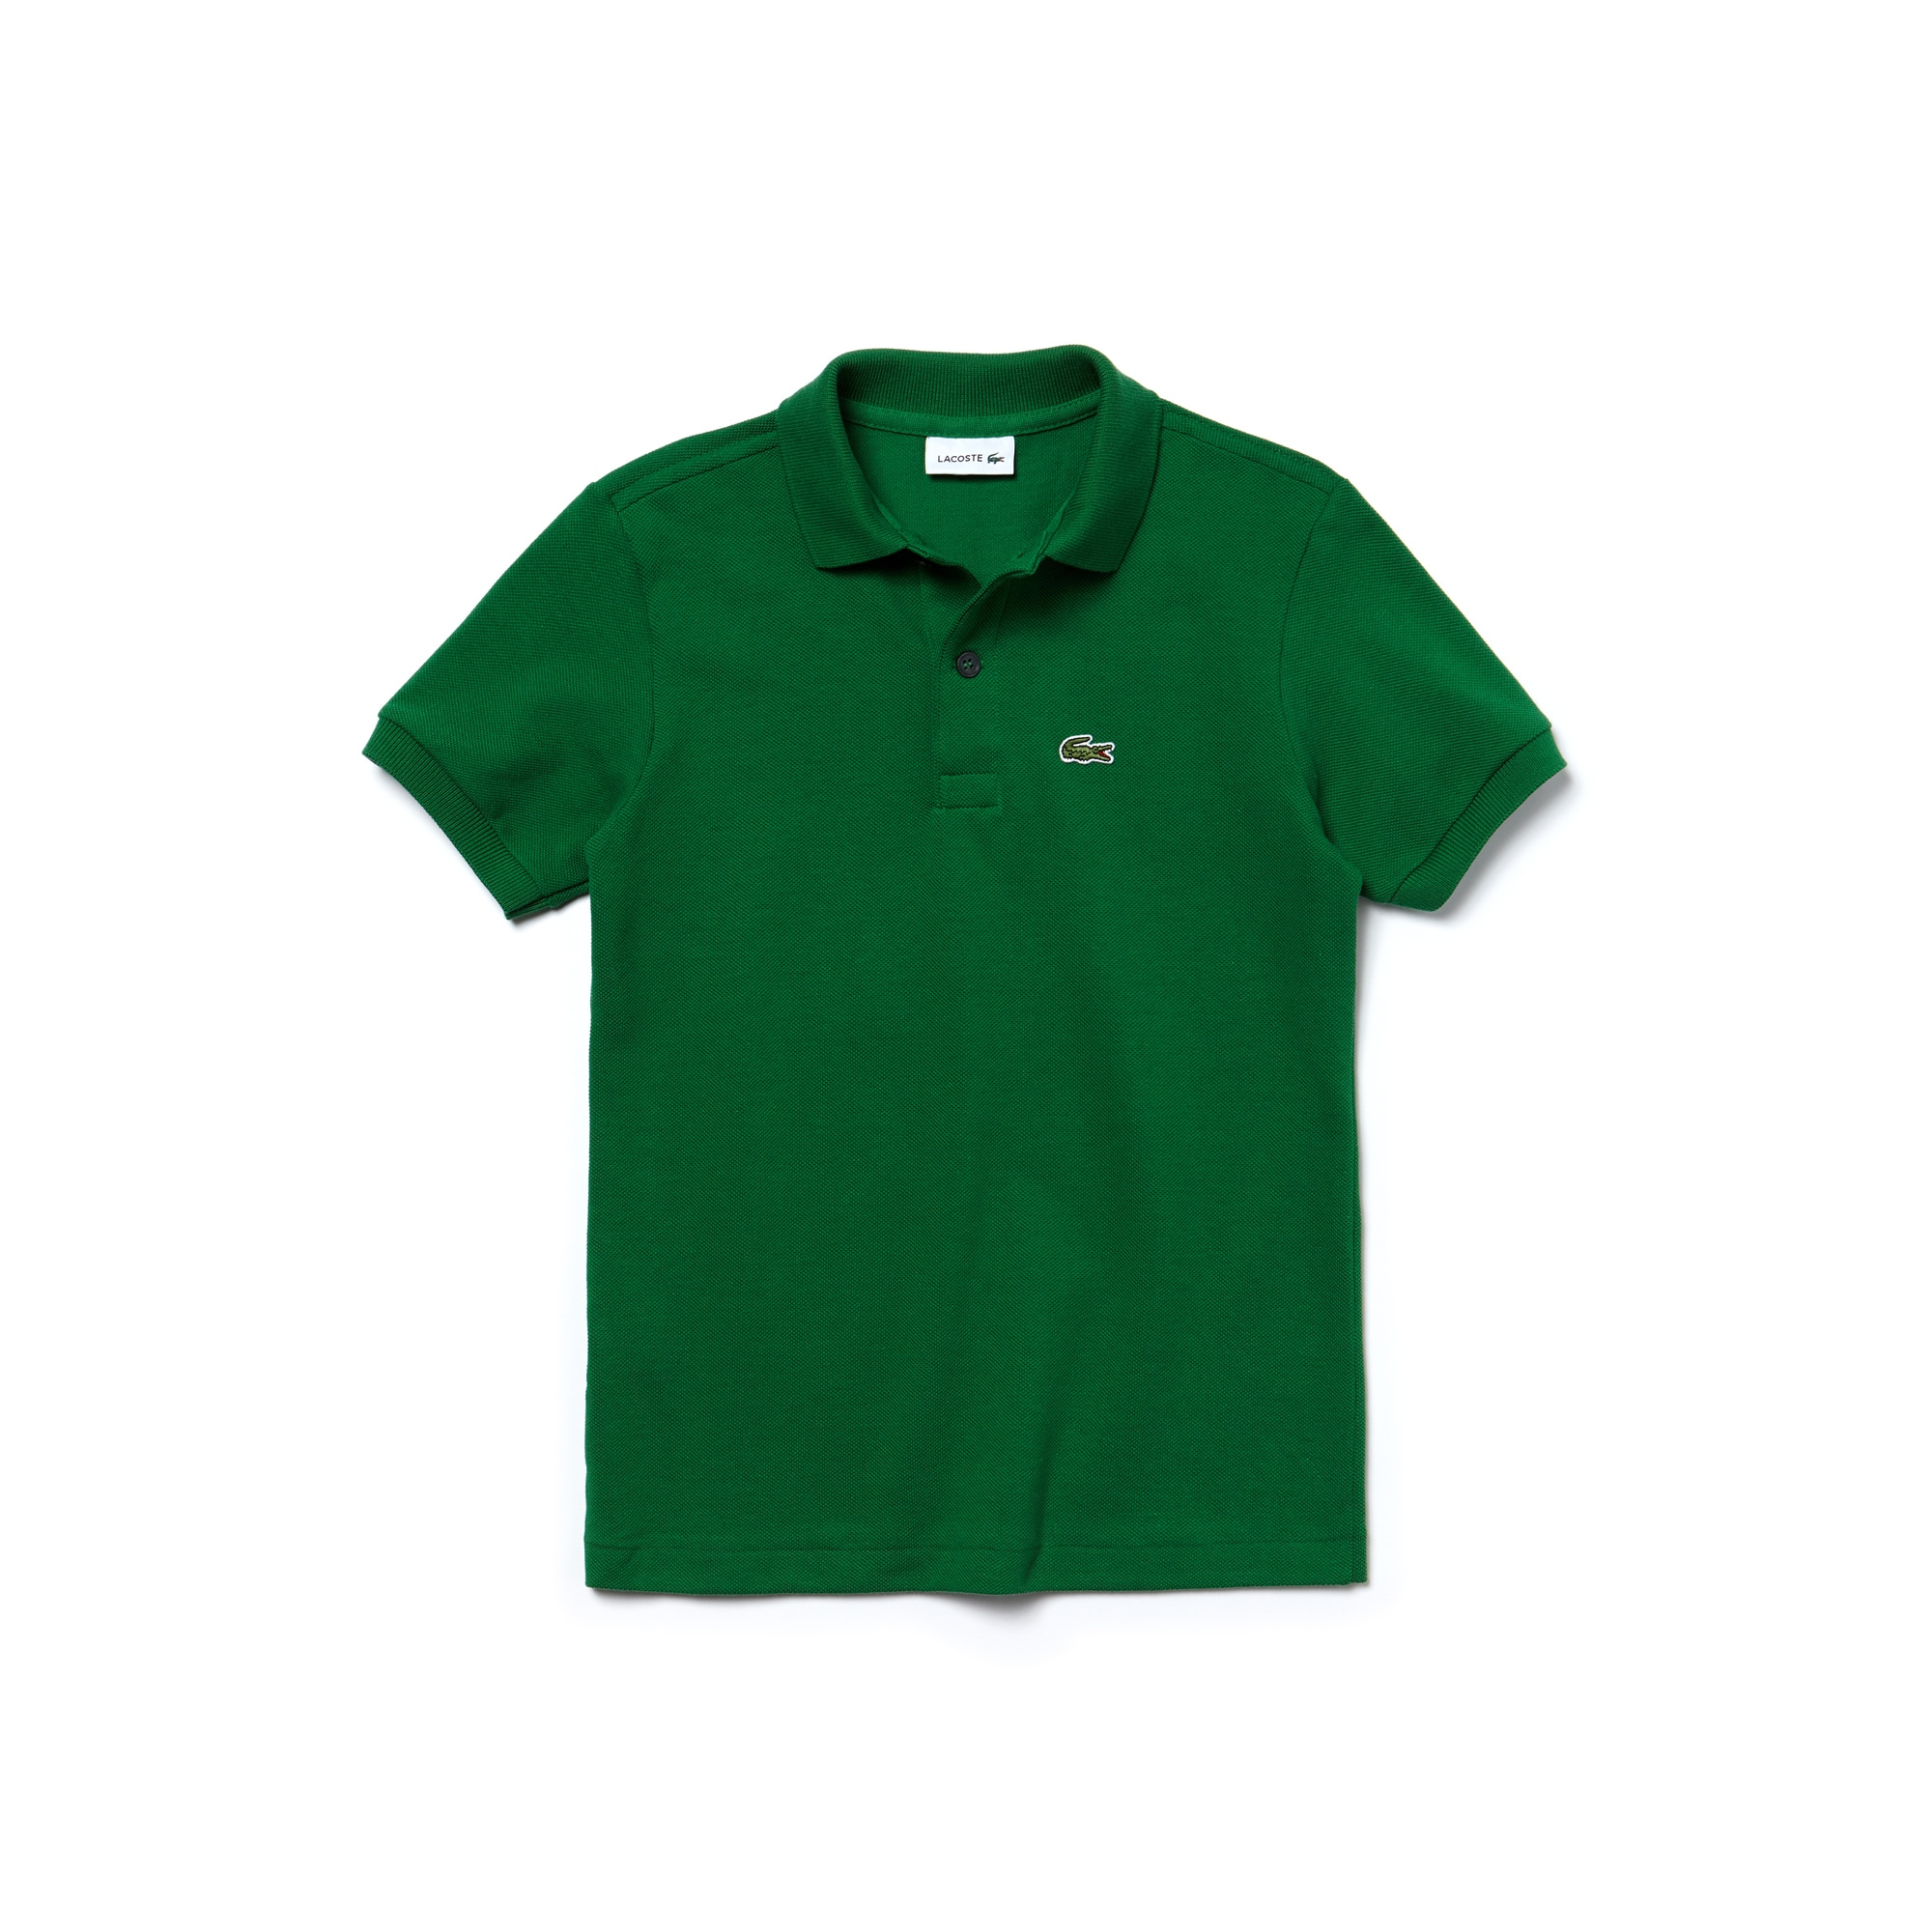 6516886f0f + 13 colors + 16 colors. 30% off. Customize Customize. Petit Piqué Polo  Shirt